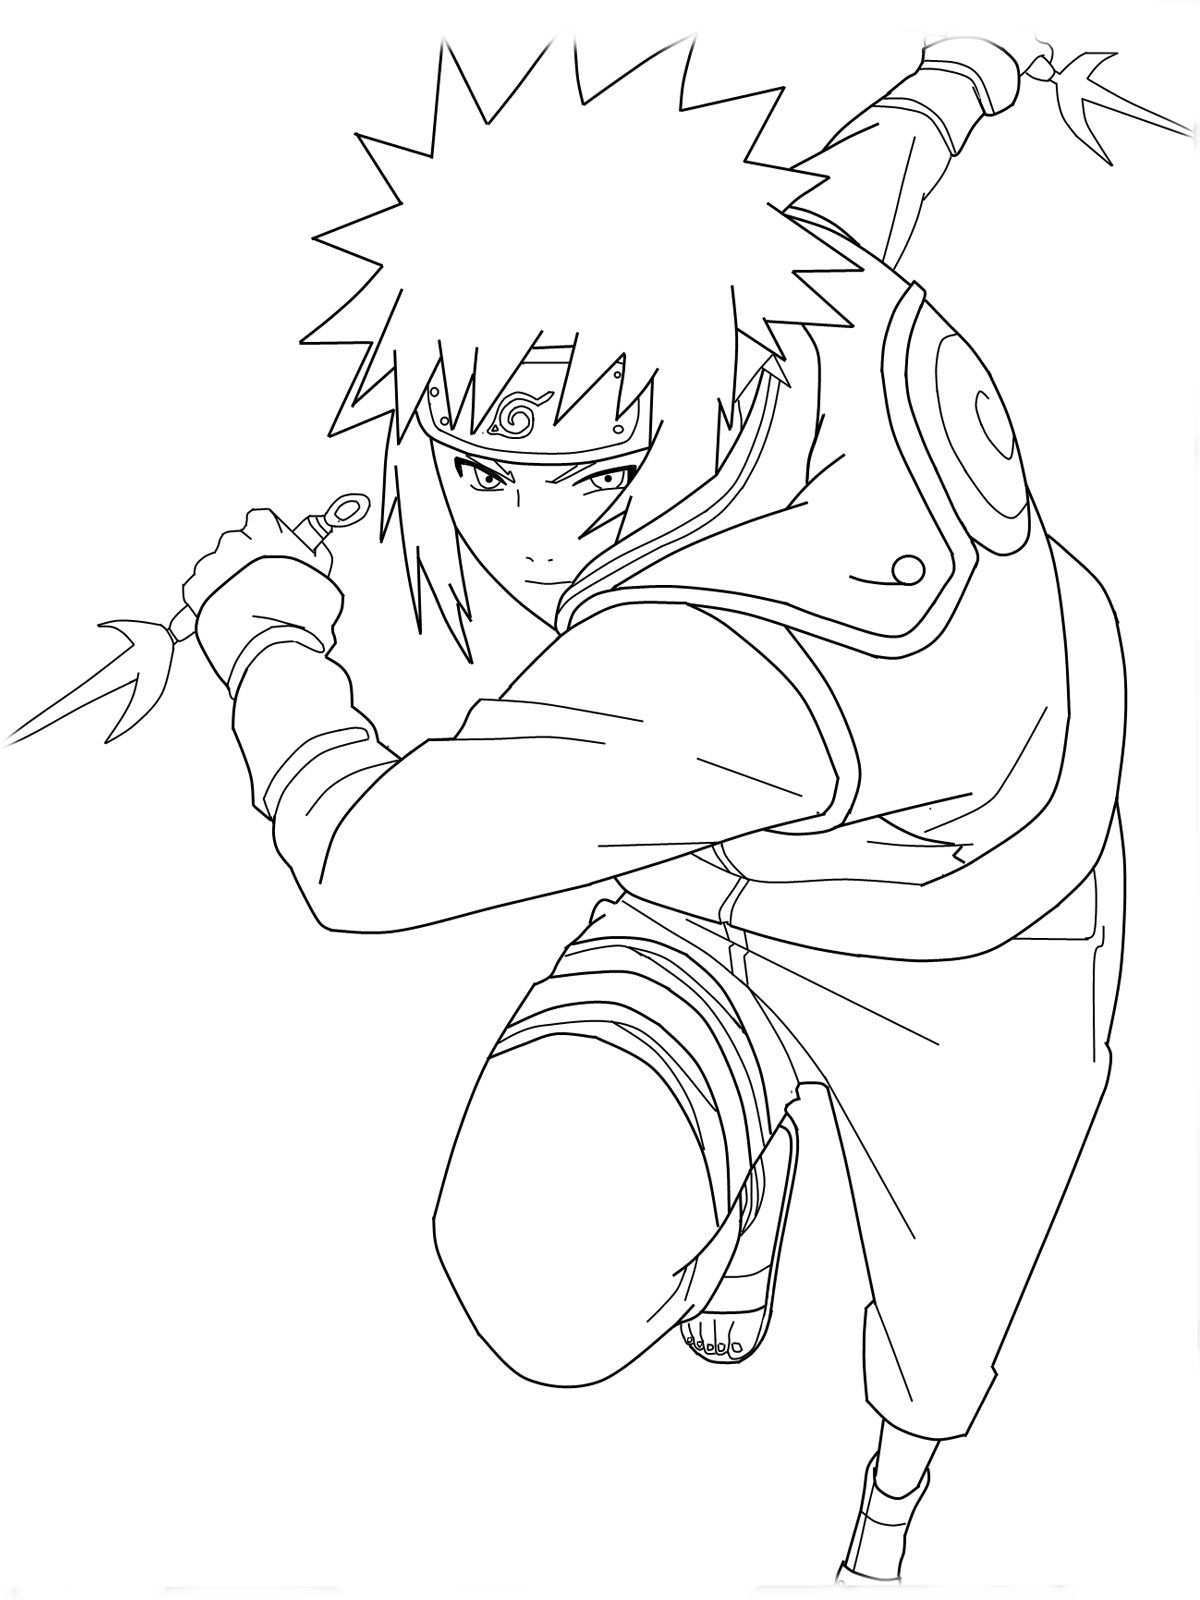 Cartoon Naruto Coloring Pages For Kids Free Coloring Pages For Kids Coloriage Naruto Coloriage Manga Coloriage Dragon Ball